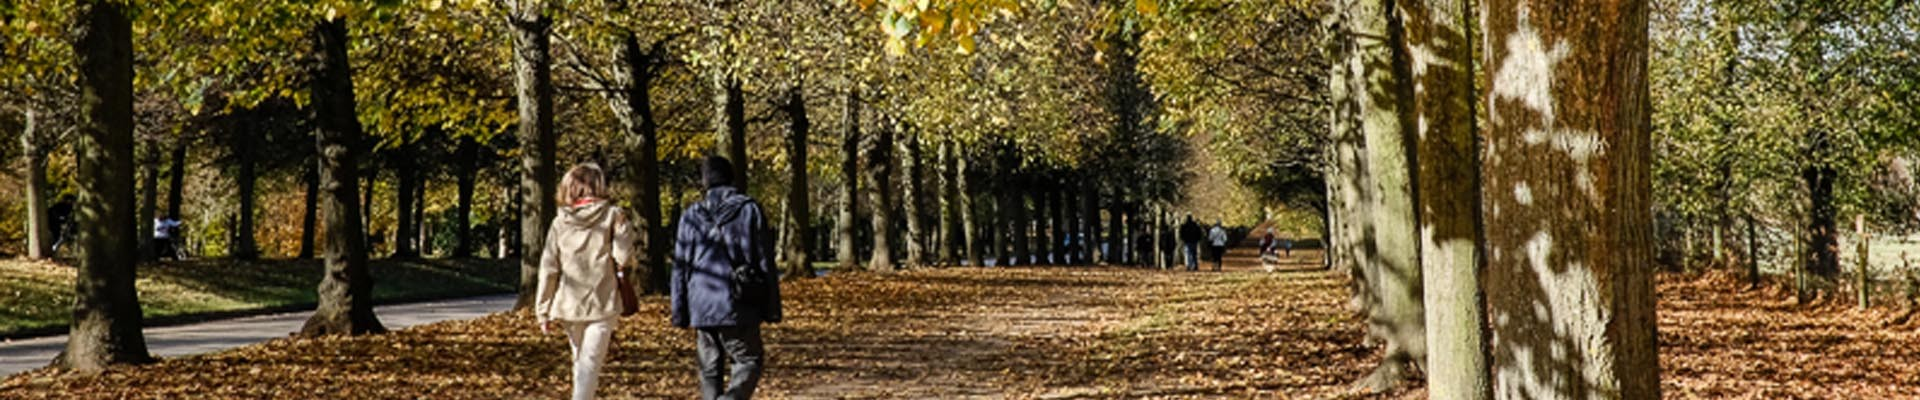 Fall in the park of the Palace of Versailles